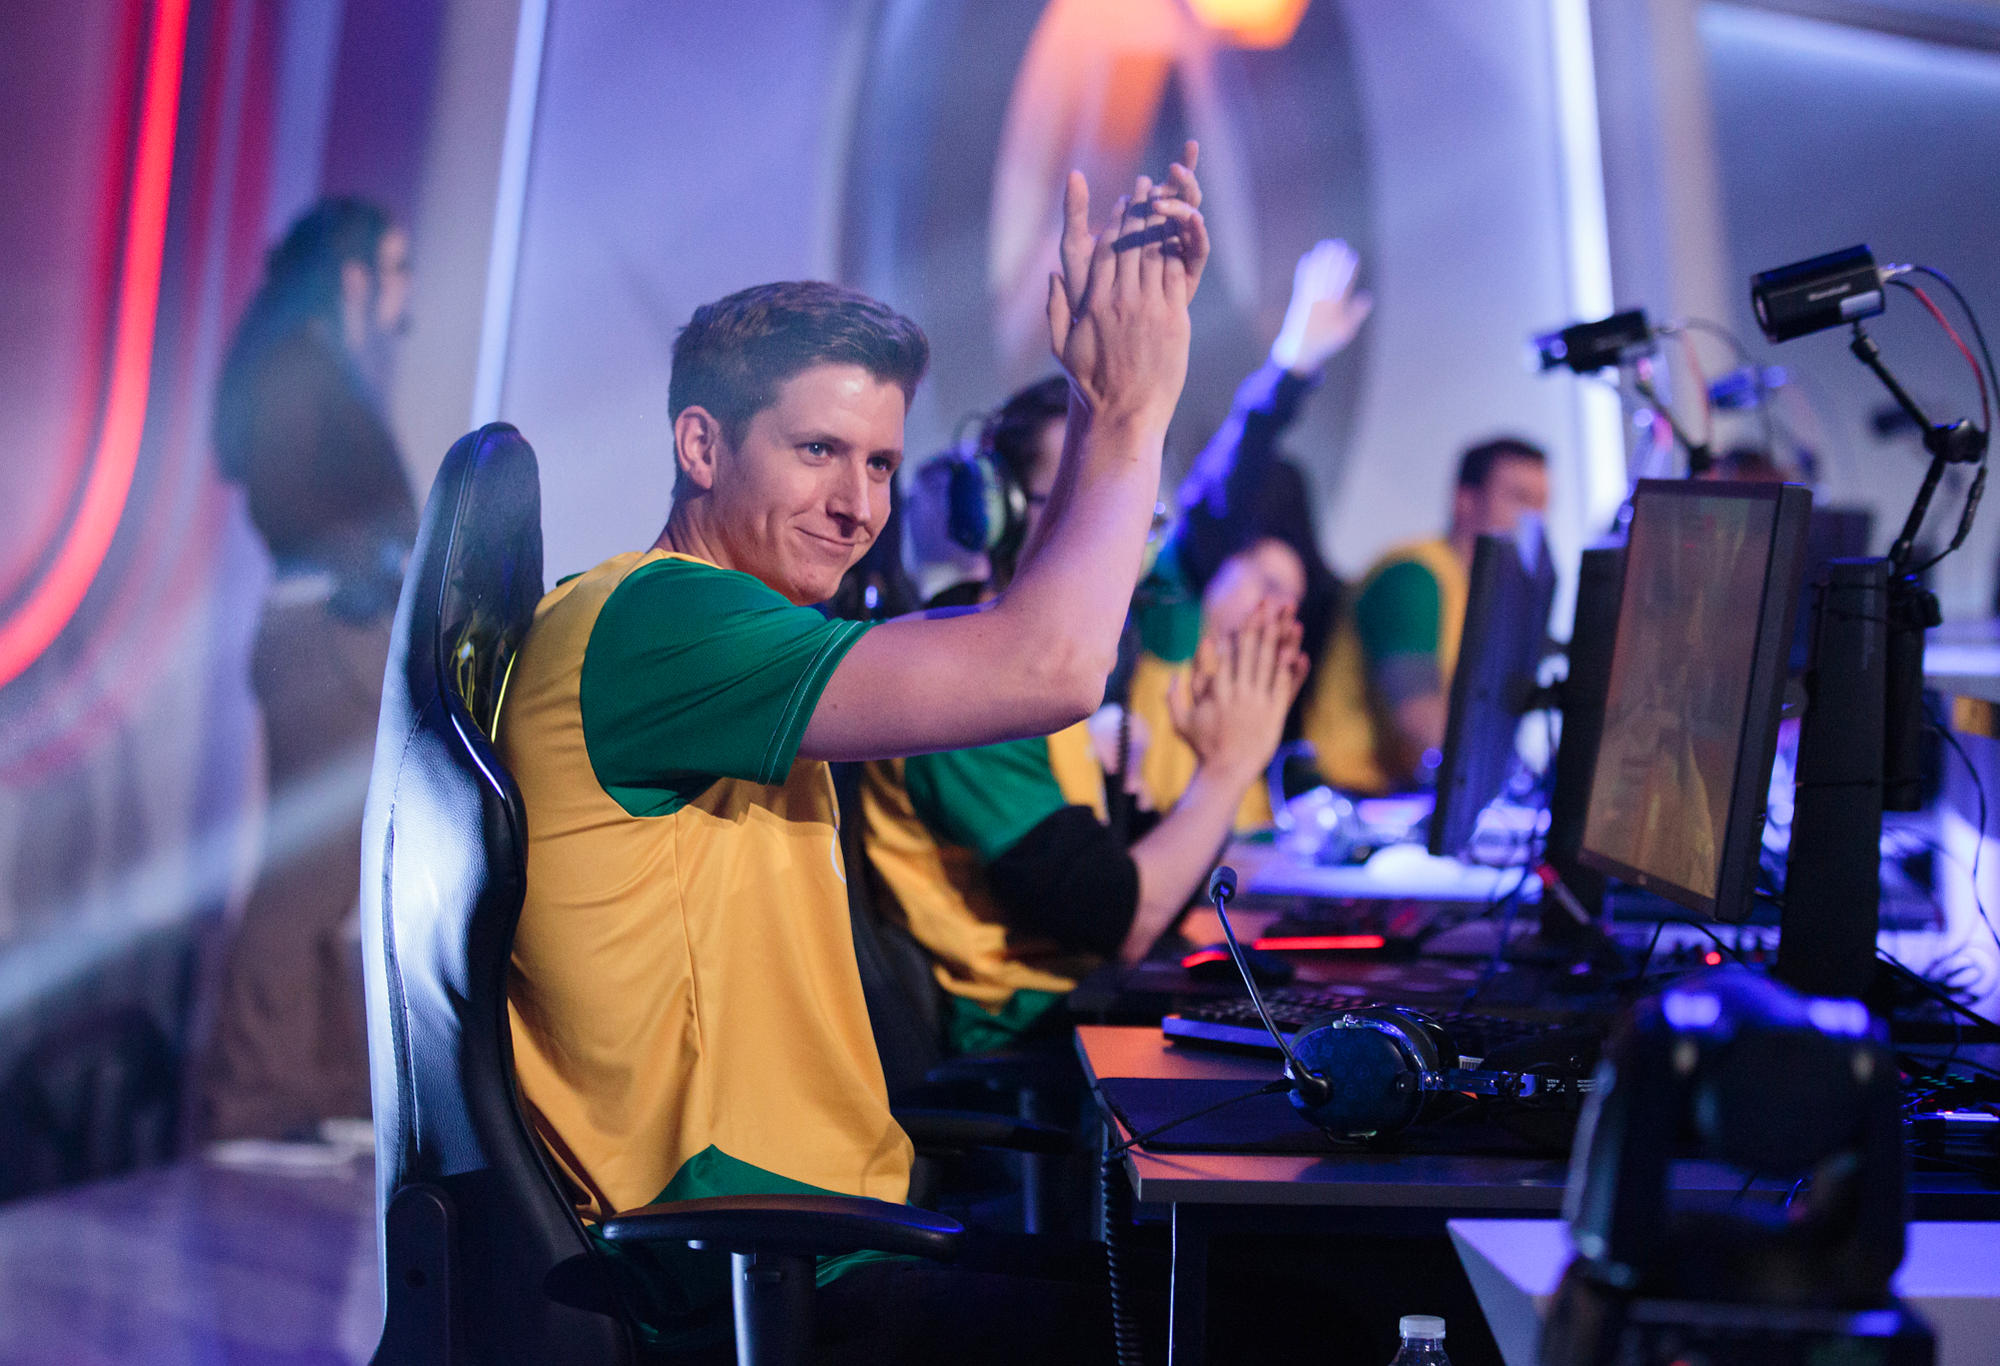 Custa (Scott Kennedy) of Australia's Overwatch World Cup team applauds the supporters following a win.